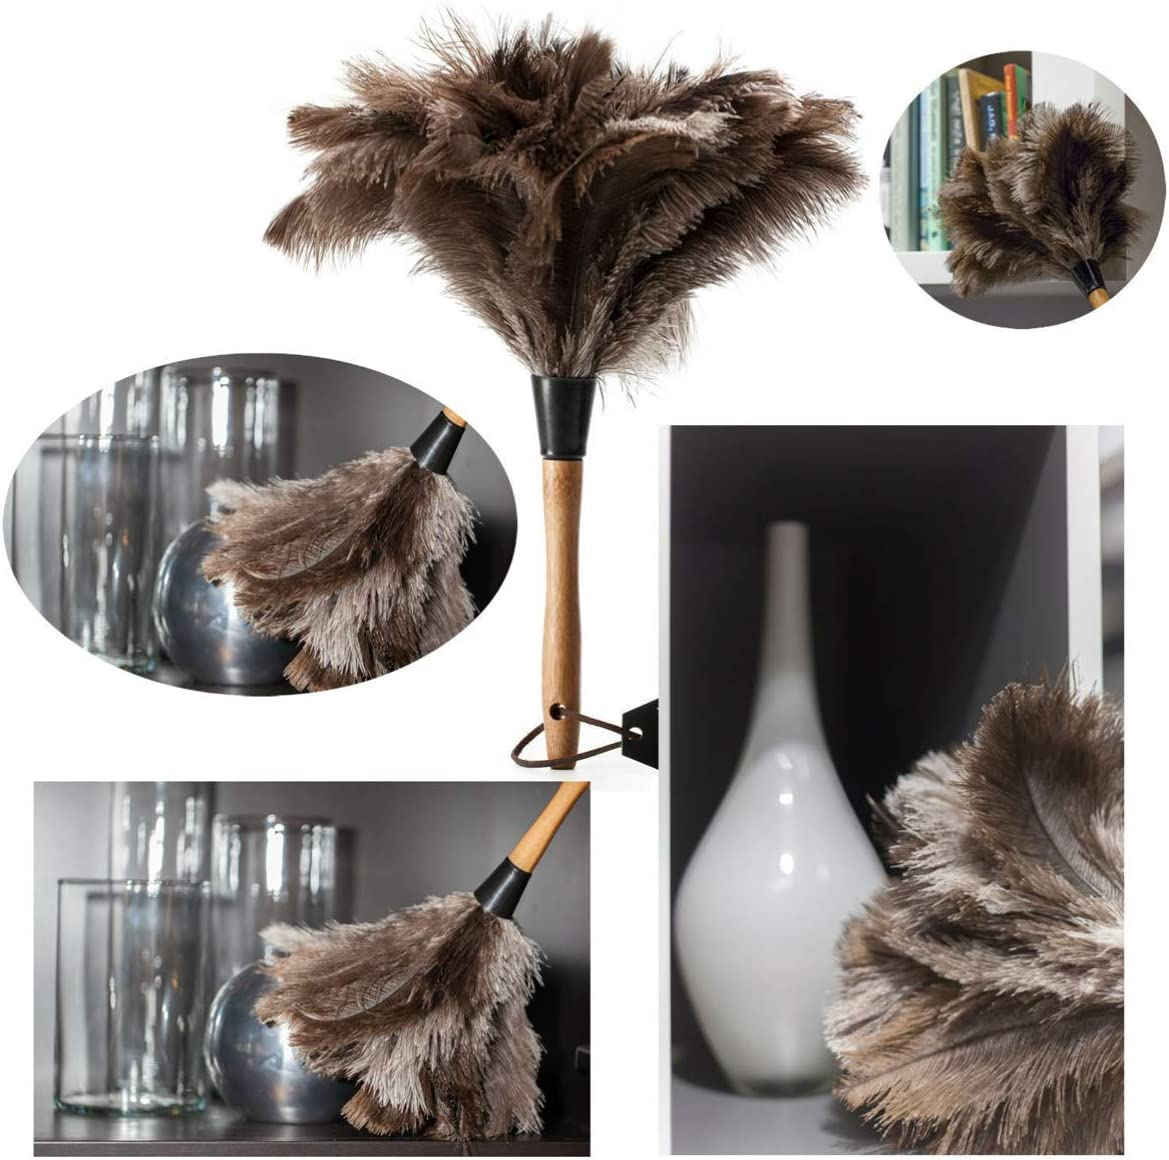 Hemoton 1 Pc Ostrich Feather Duster Wooden Handle Portable Long Handle Cleaning Brush Tool Ostrich Feather Duster for Home Living Room